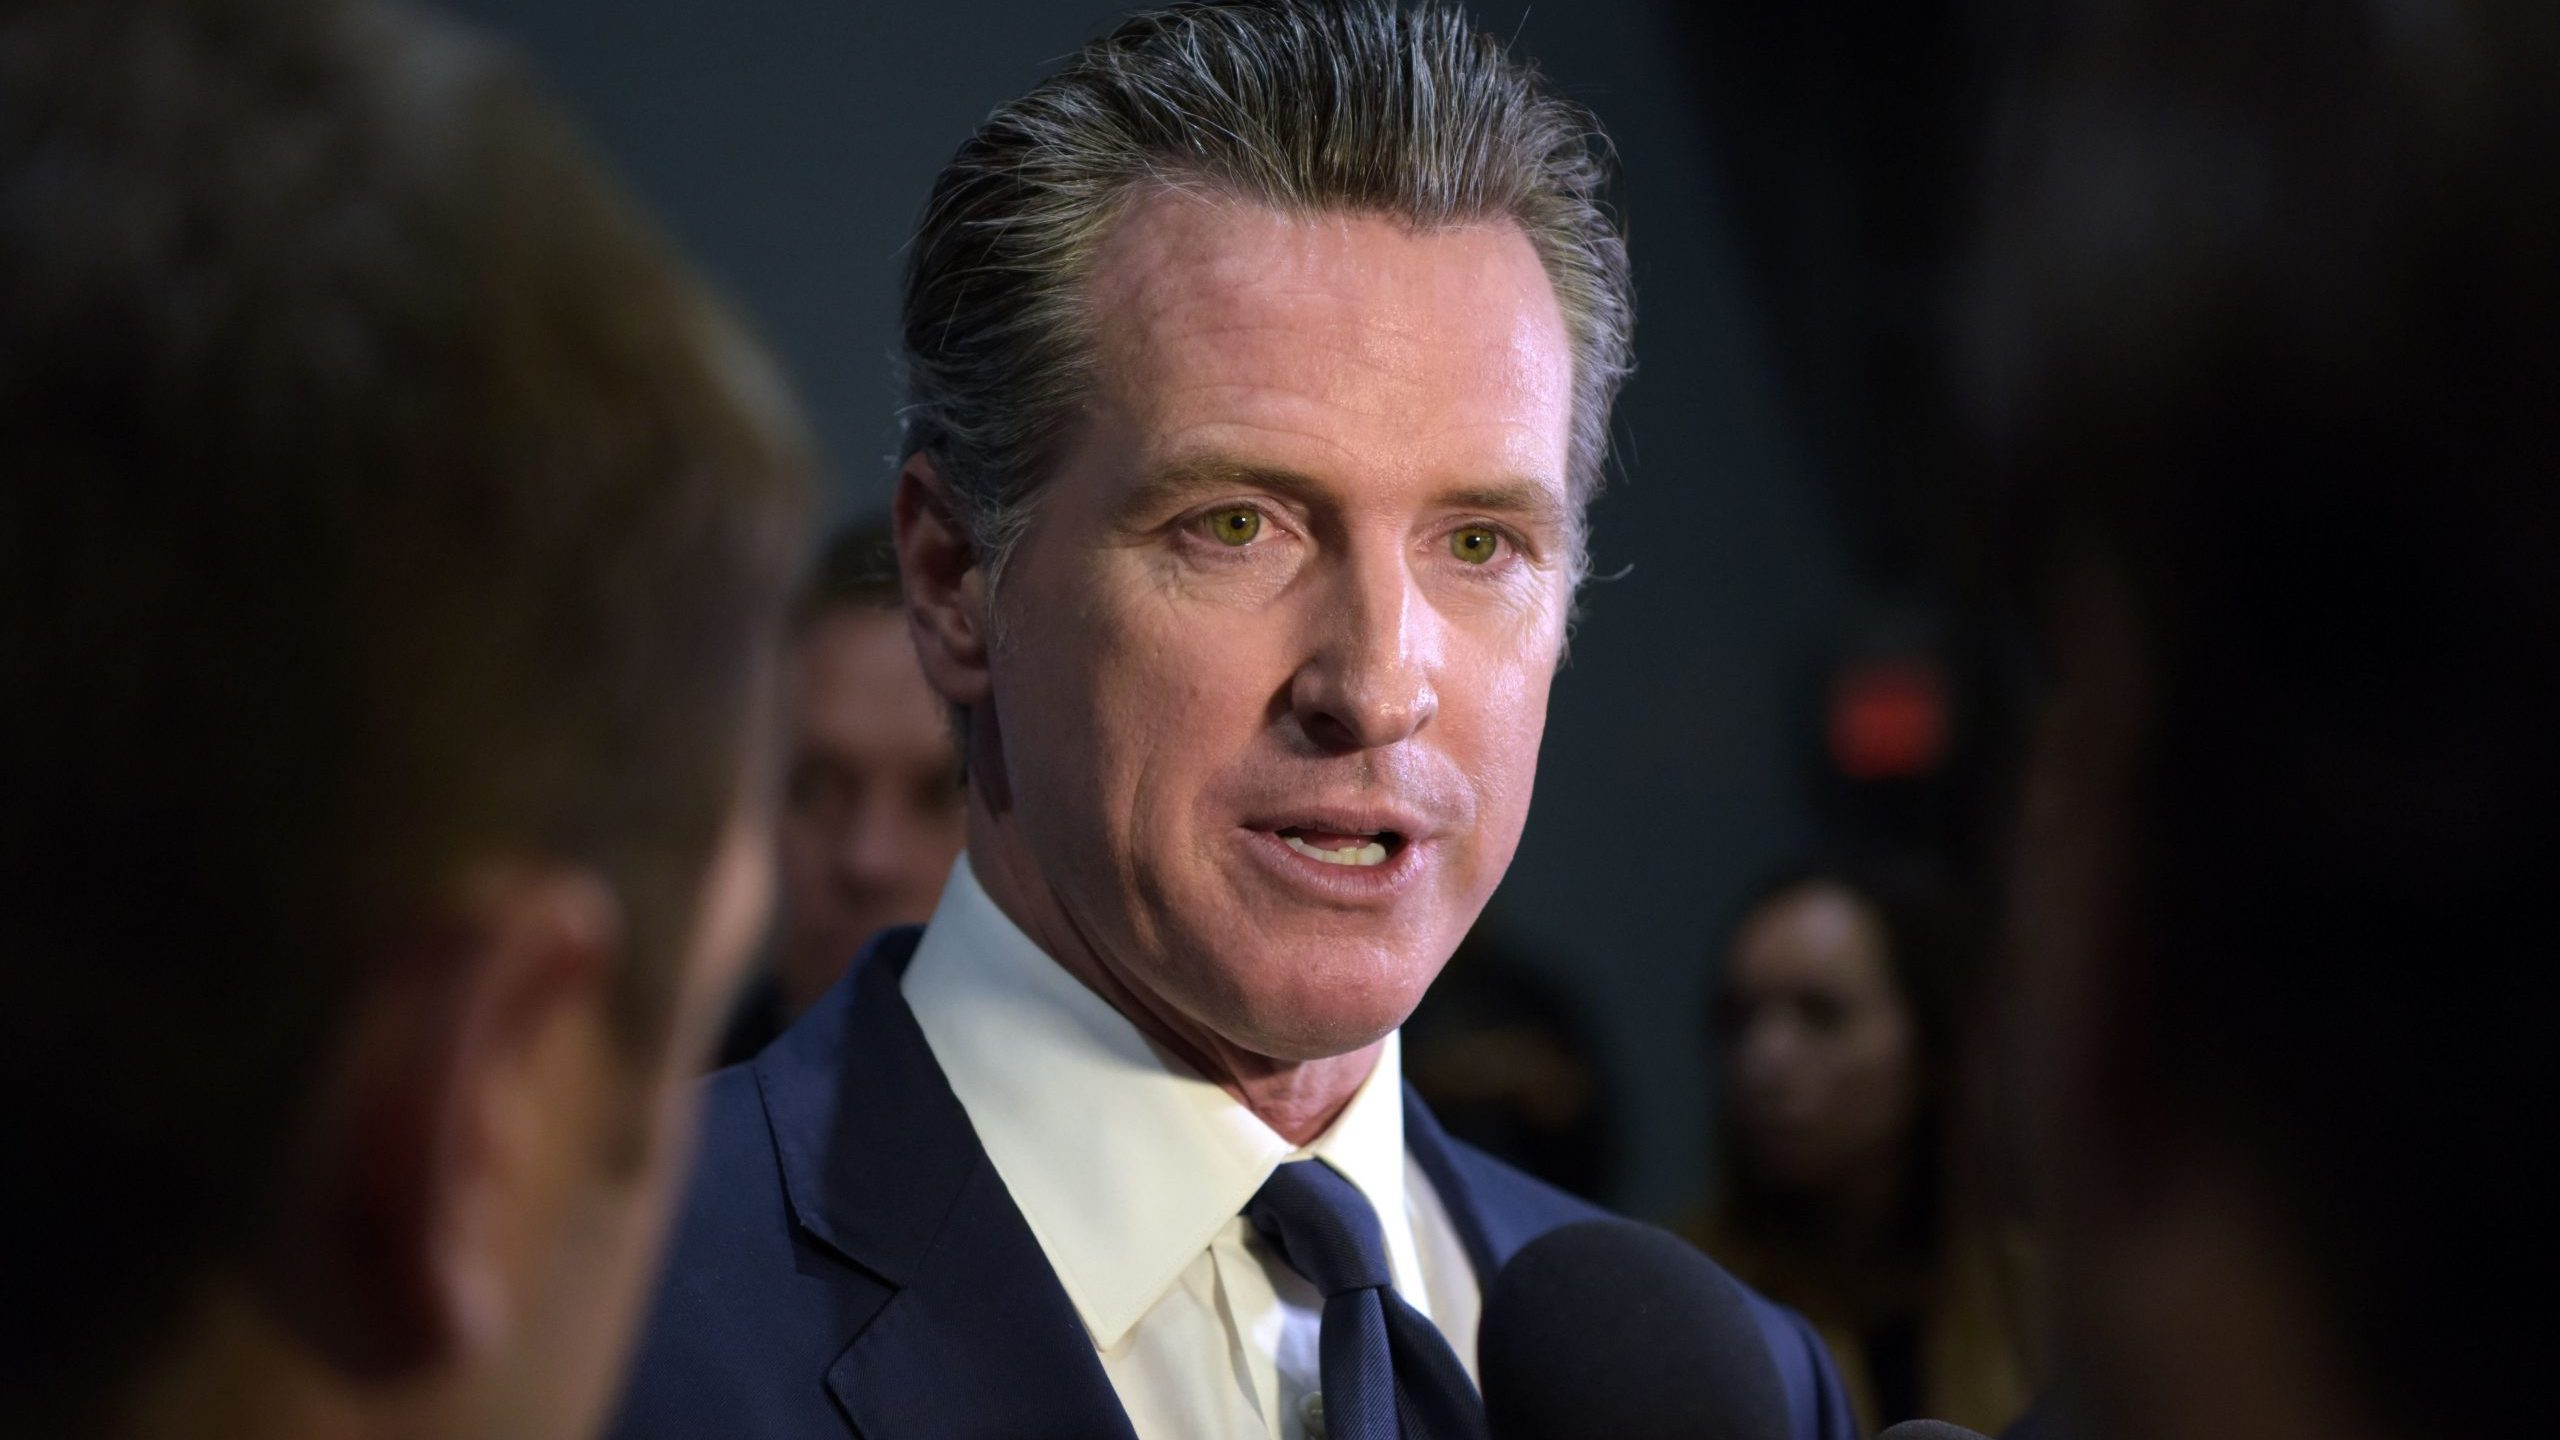 Gov. Gavin Newsom speaks to the press after the sixth Democratic primary debate of the 2020 presidential campaign at Loyola Marymount University in Los Angeles on Dec. 19, 2019. (Credit: AGUSTIN PAULLIER/AFP via Getty Images)